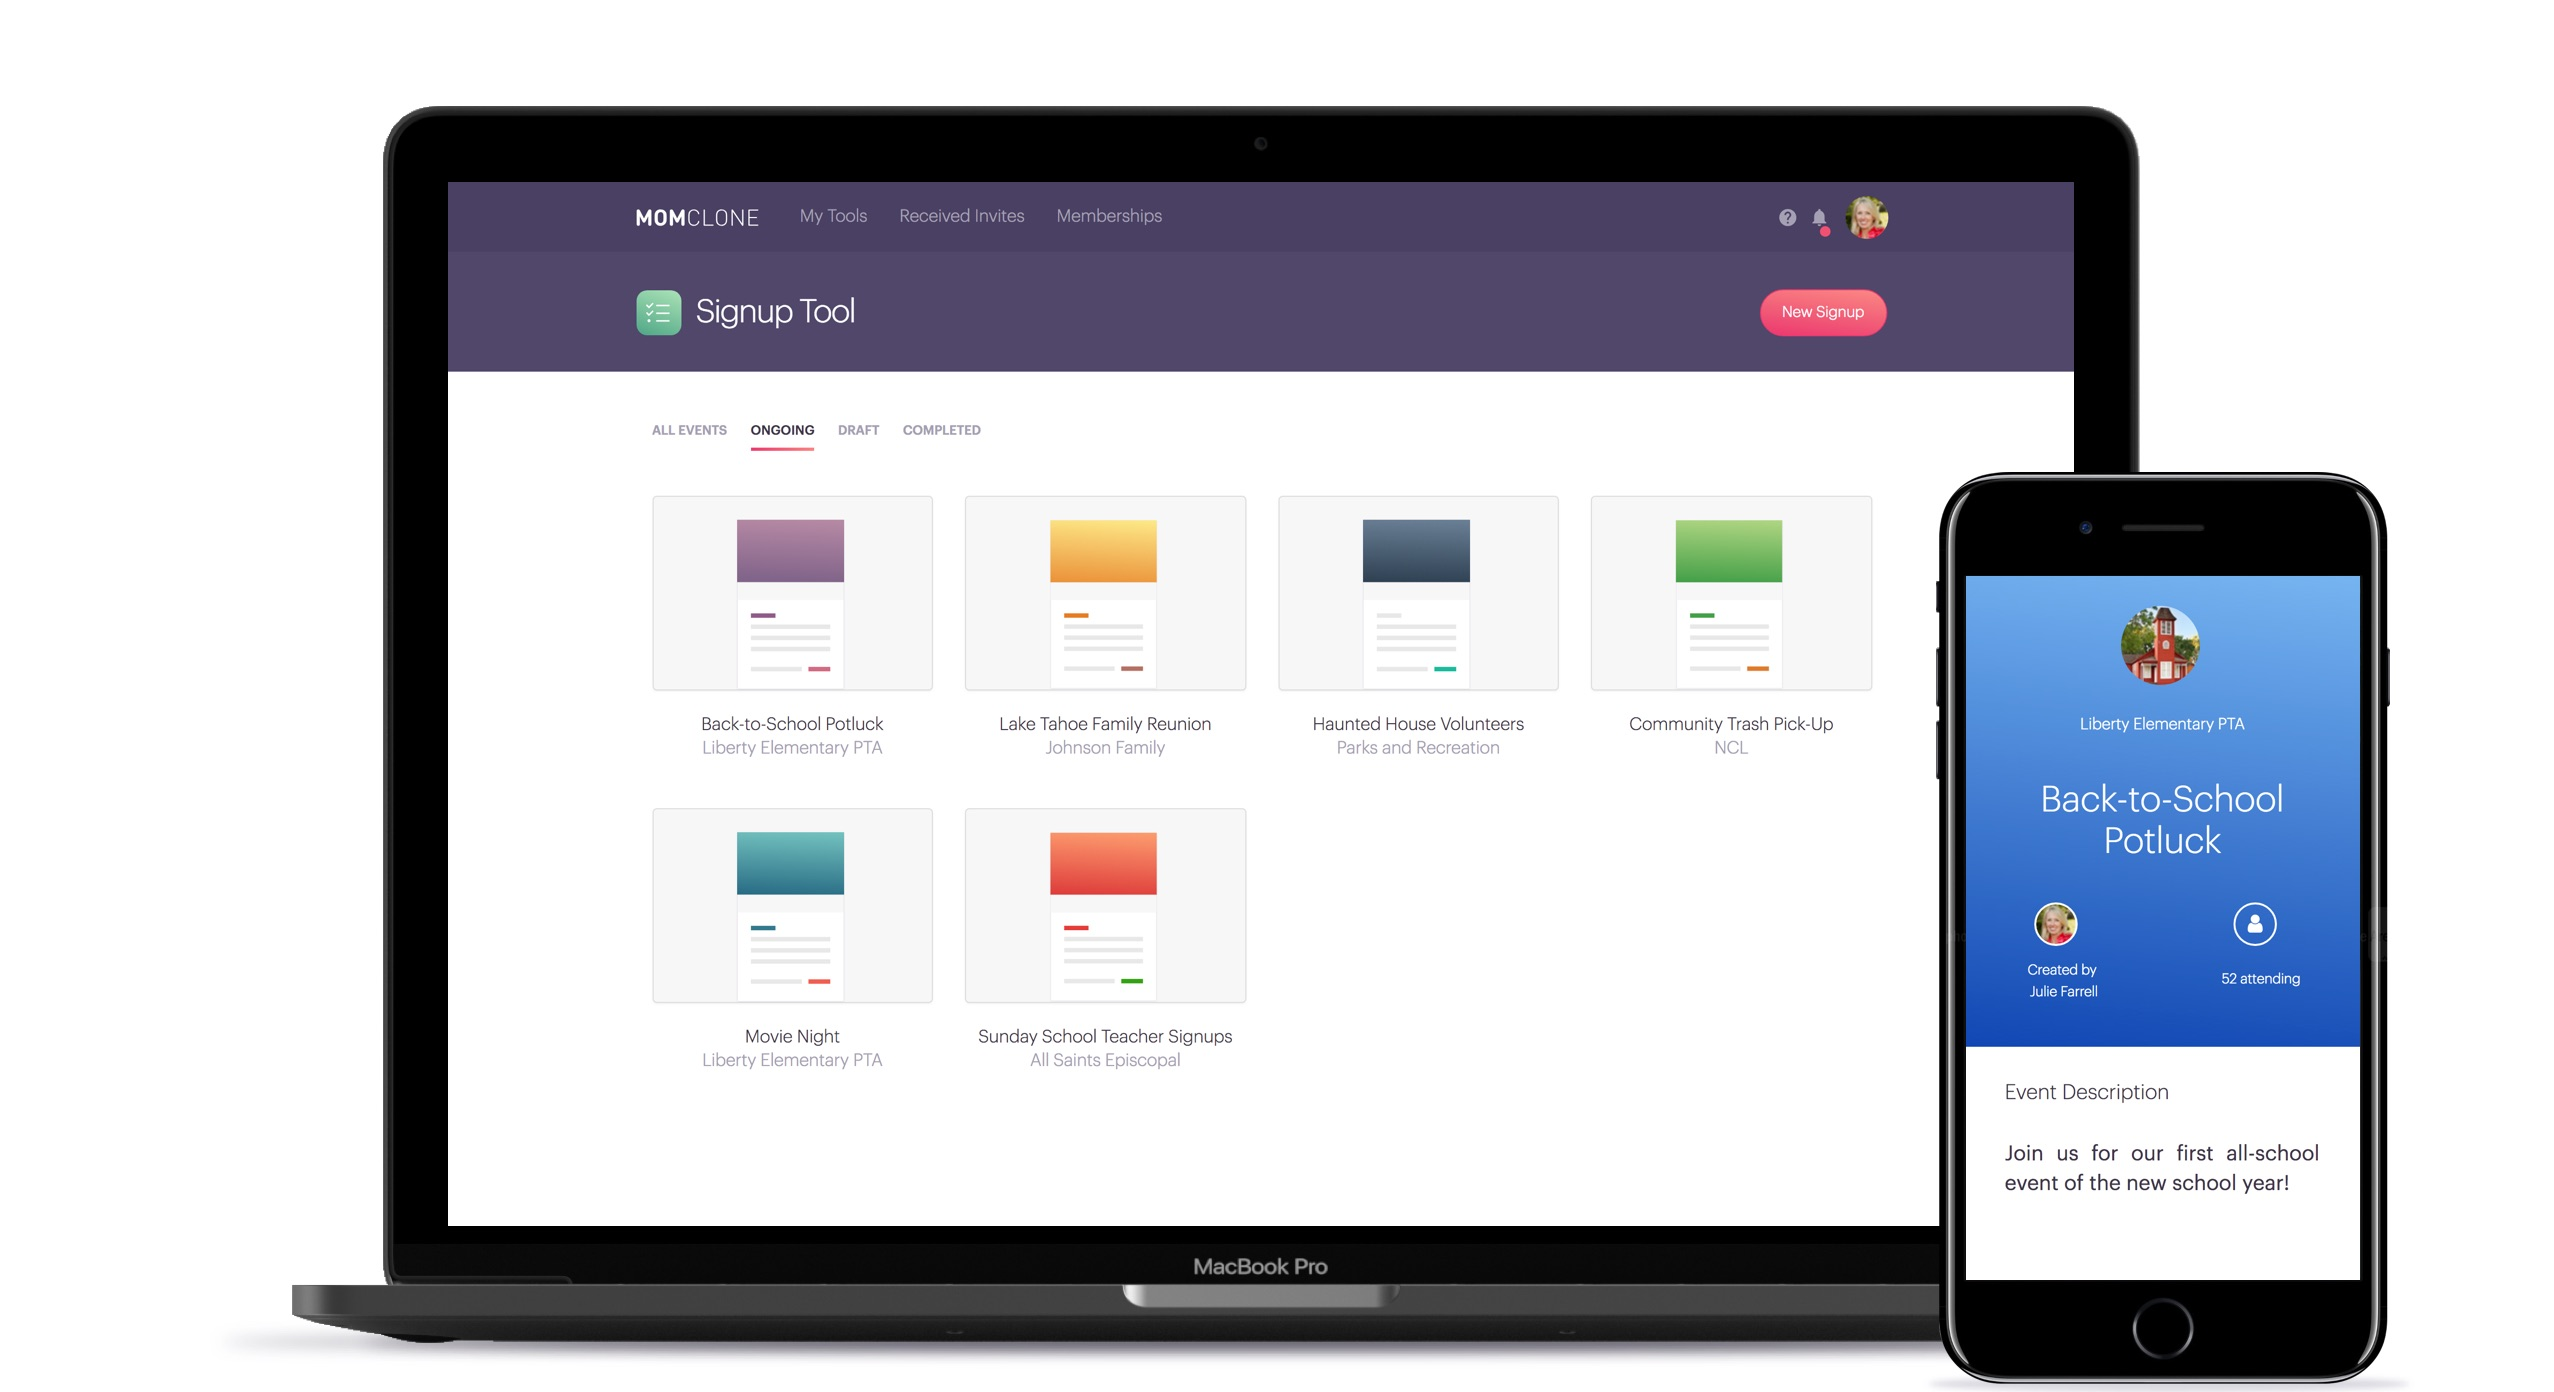 MomClone helps make sign-up and organization easier   Sponsor